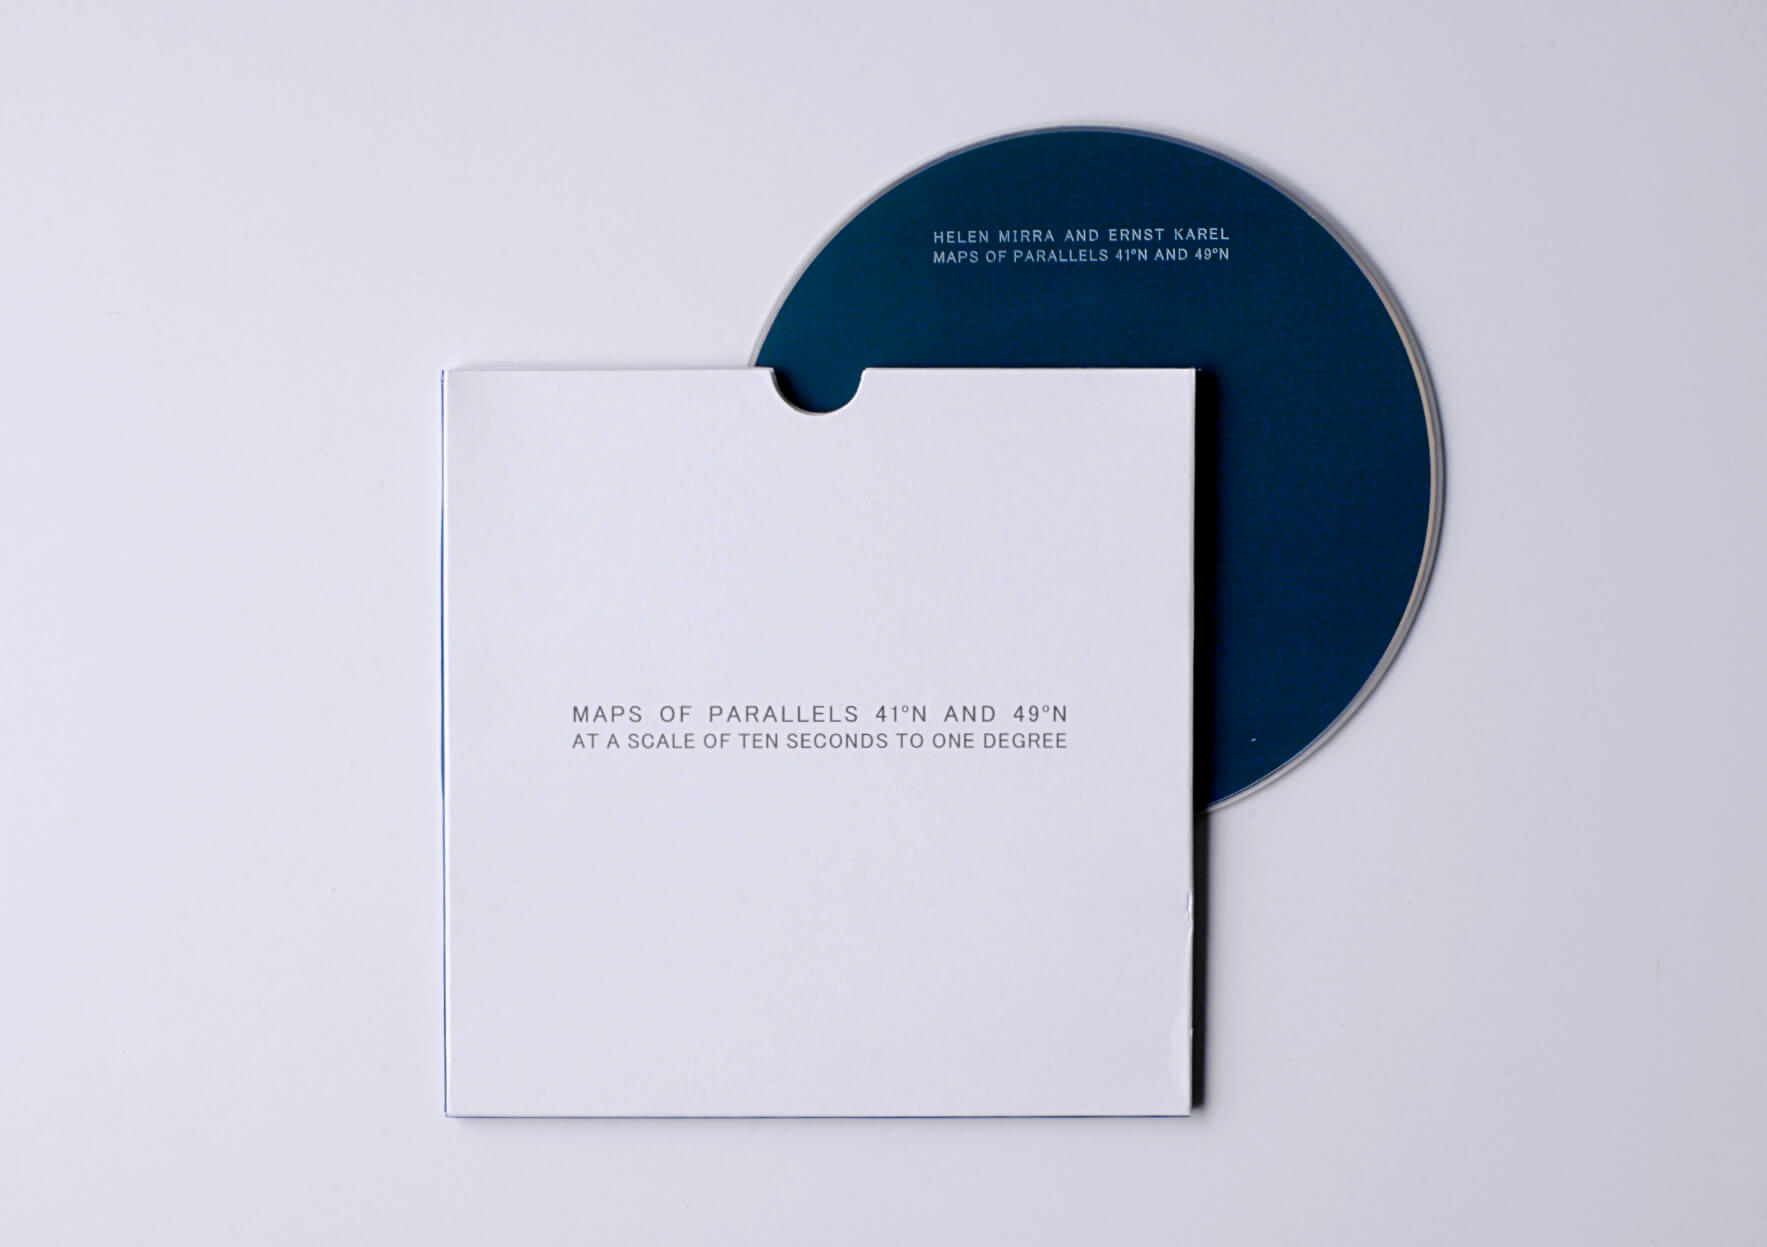 Hellen Mirra & Ernst Karel Maps of Parallels 41 º N and 49º N at a scale of the seconds to one degree, 2014 12,5 x 14 cm, CD audio Ed. Shpuma Records, Lisboa | Mother | ProjecteSD